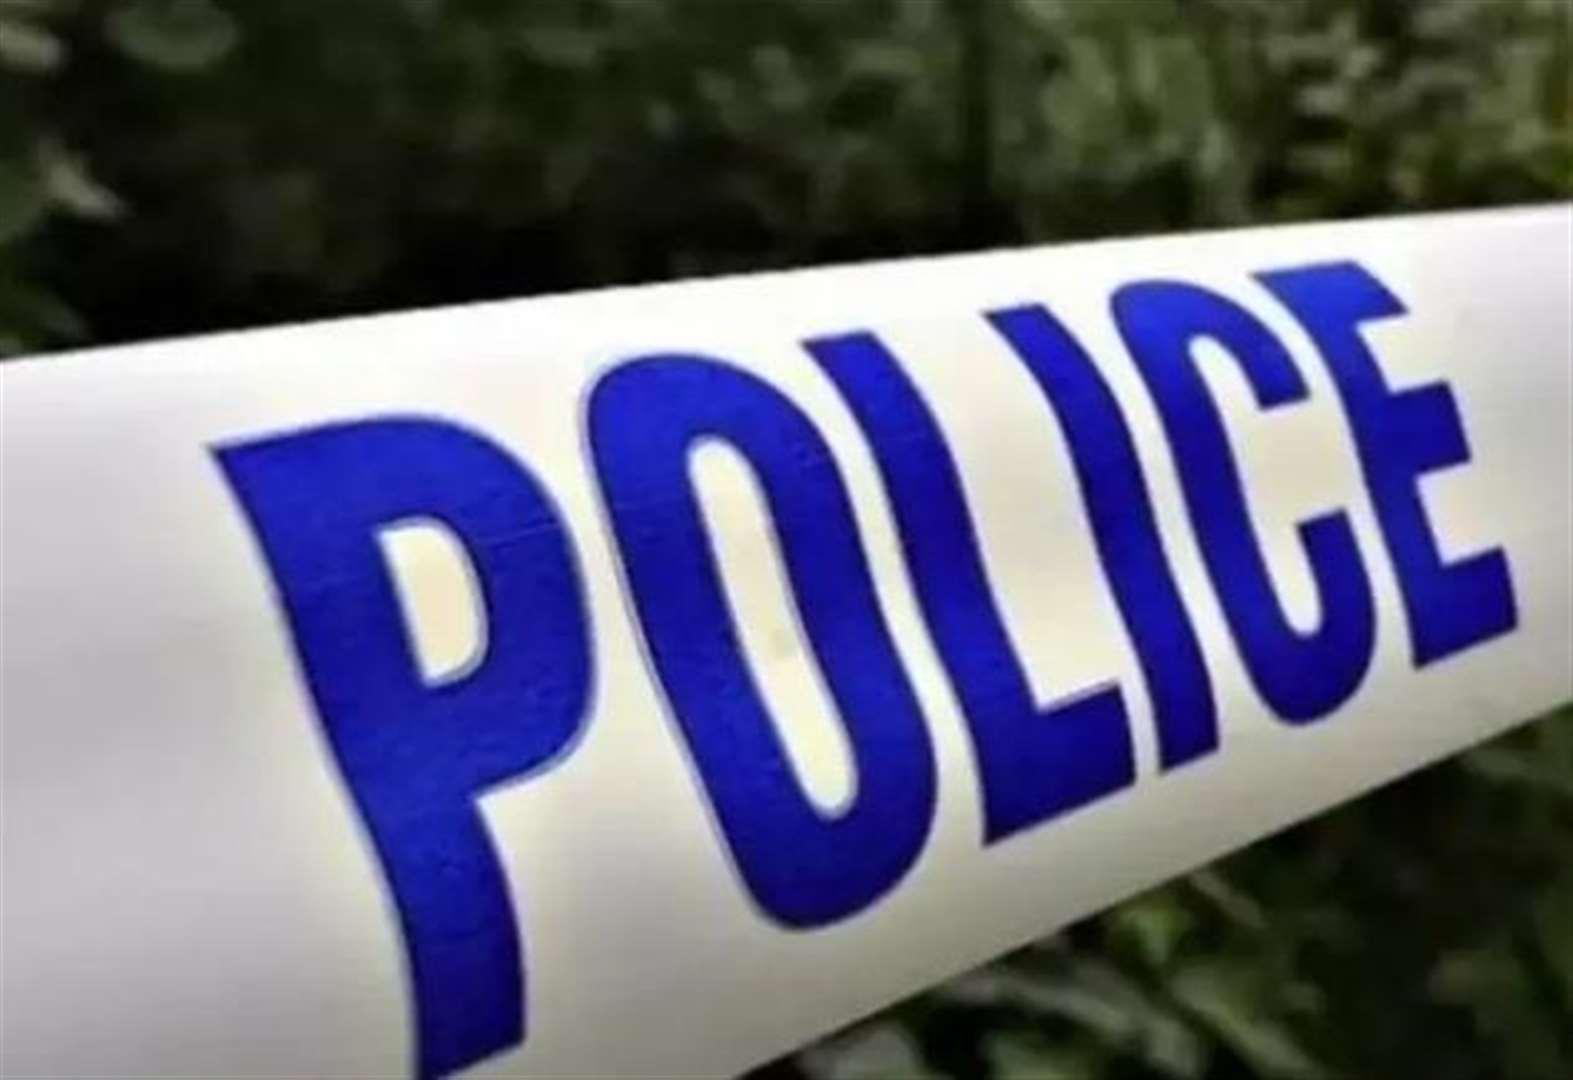 UPDATE: Post mortem to be carried out today following unexplained death in Diss